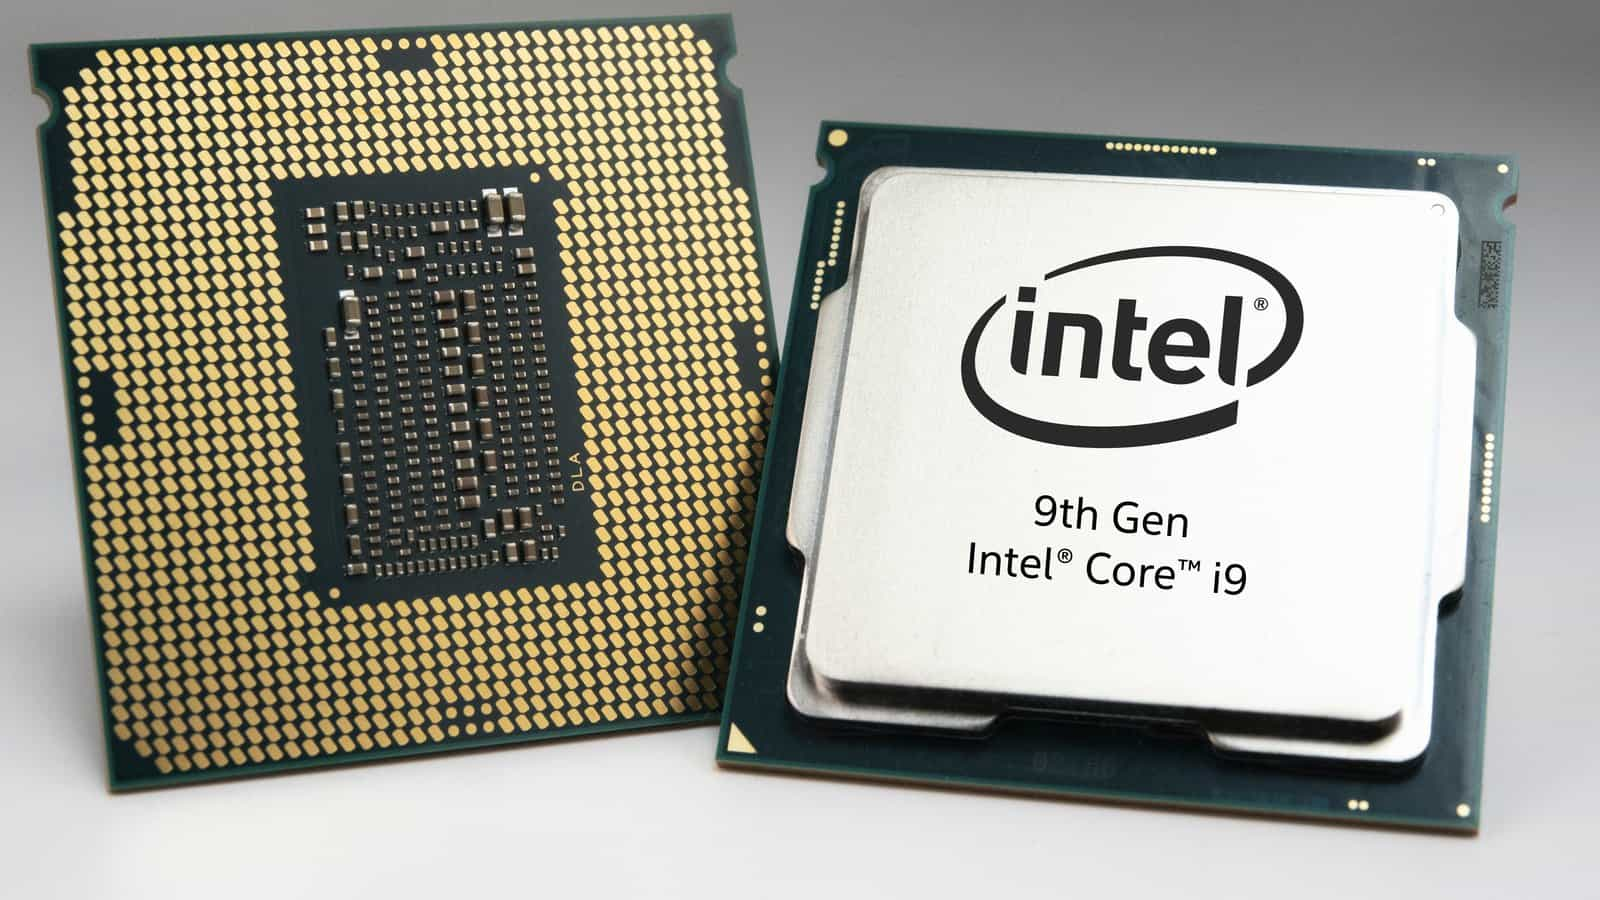 Intel-cpu-procesor-Core-i9-coffee-lake-refresh-lga1151-1600